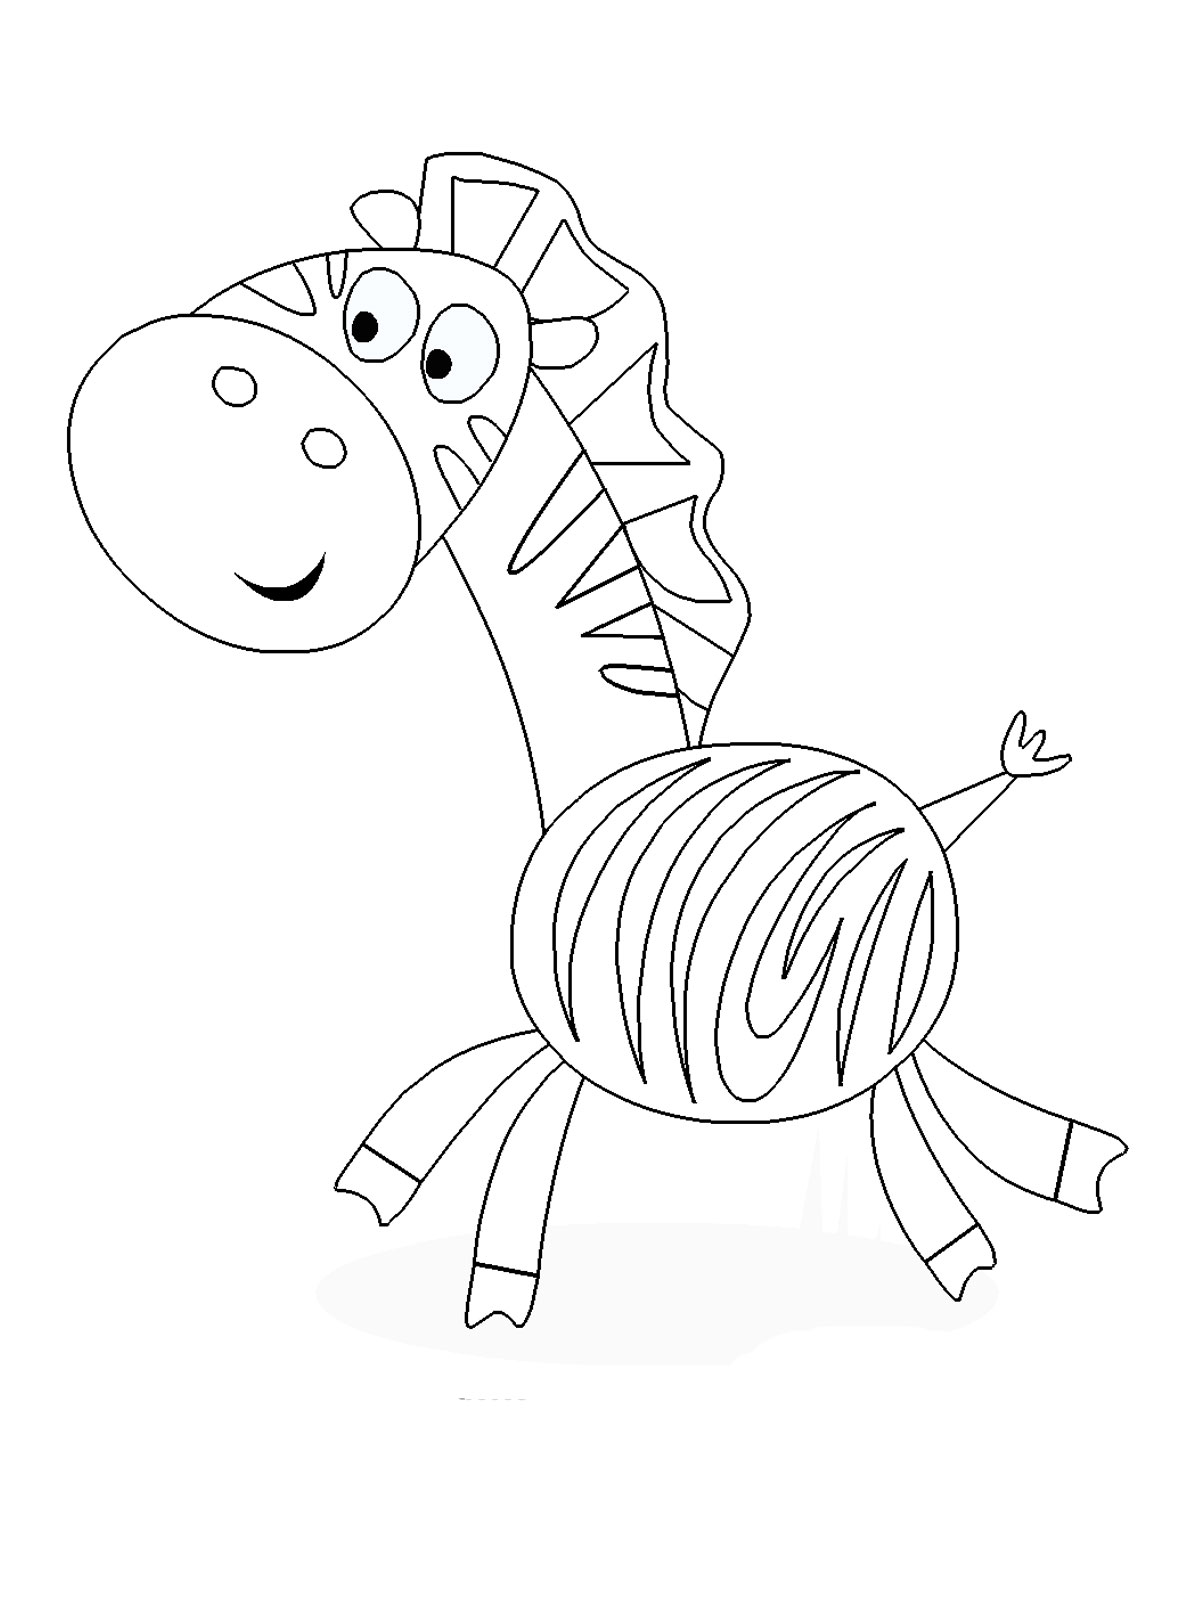 pictures of kids coloring free printable boy coloring pages for kids coloring of kids pictures